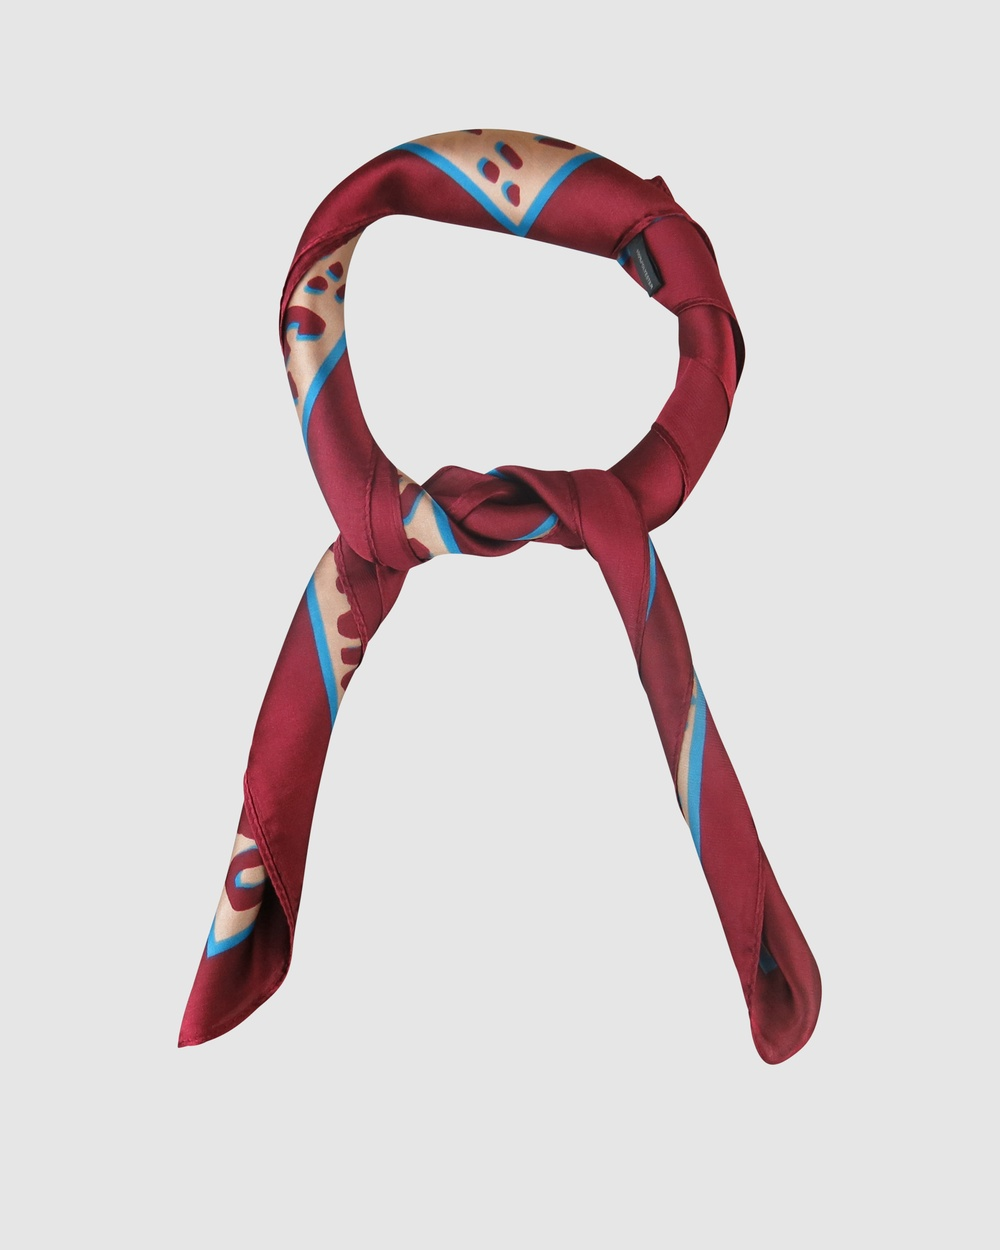 Morgan & Taylor Liana Scarf Scarves Gloves Red